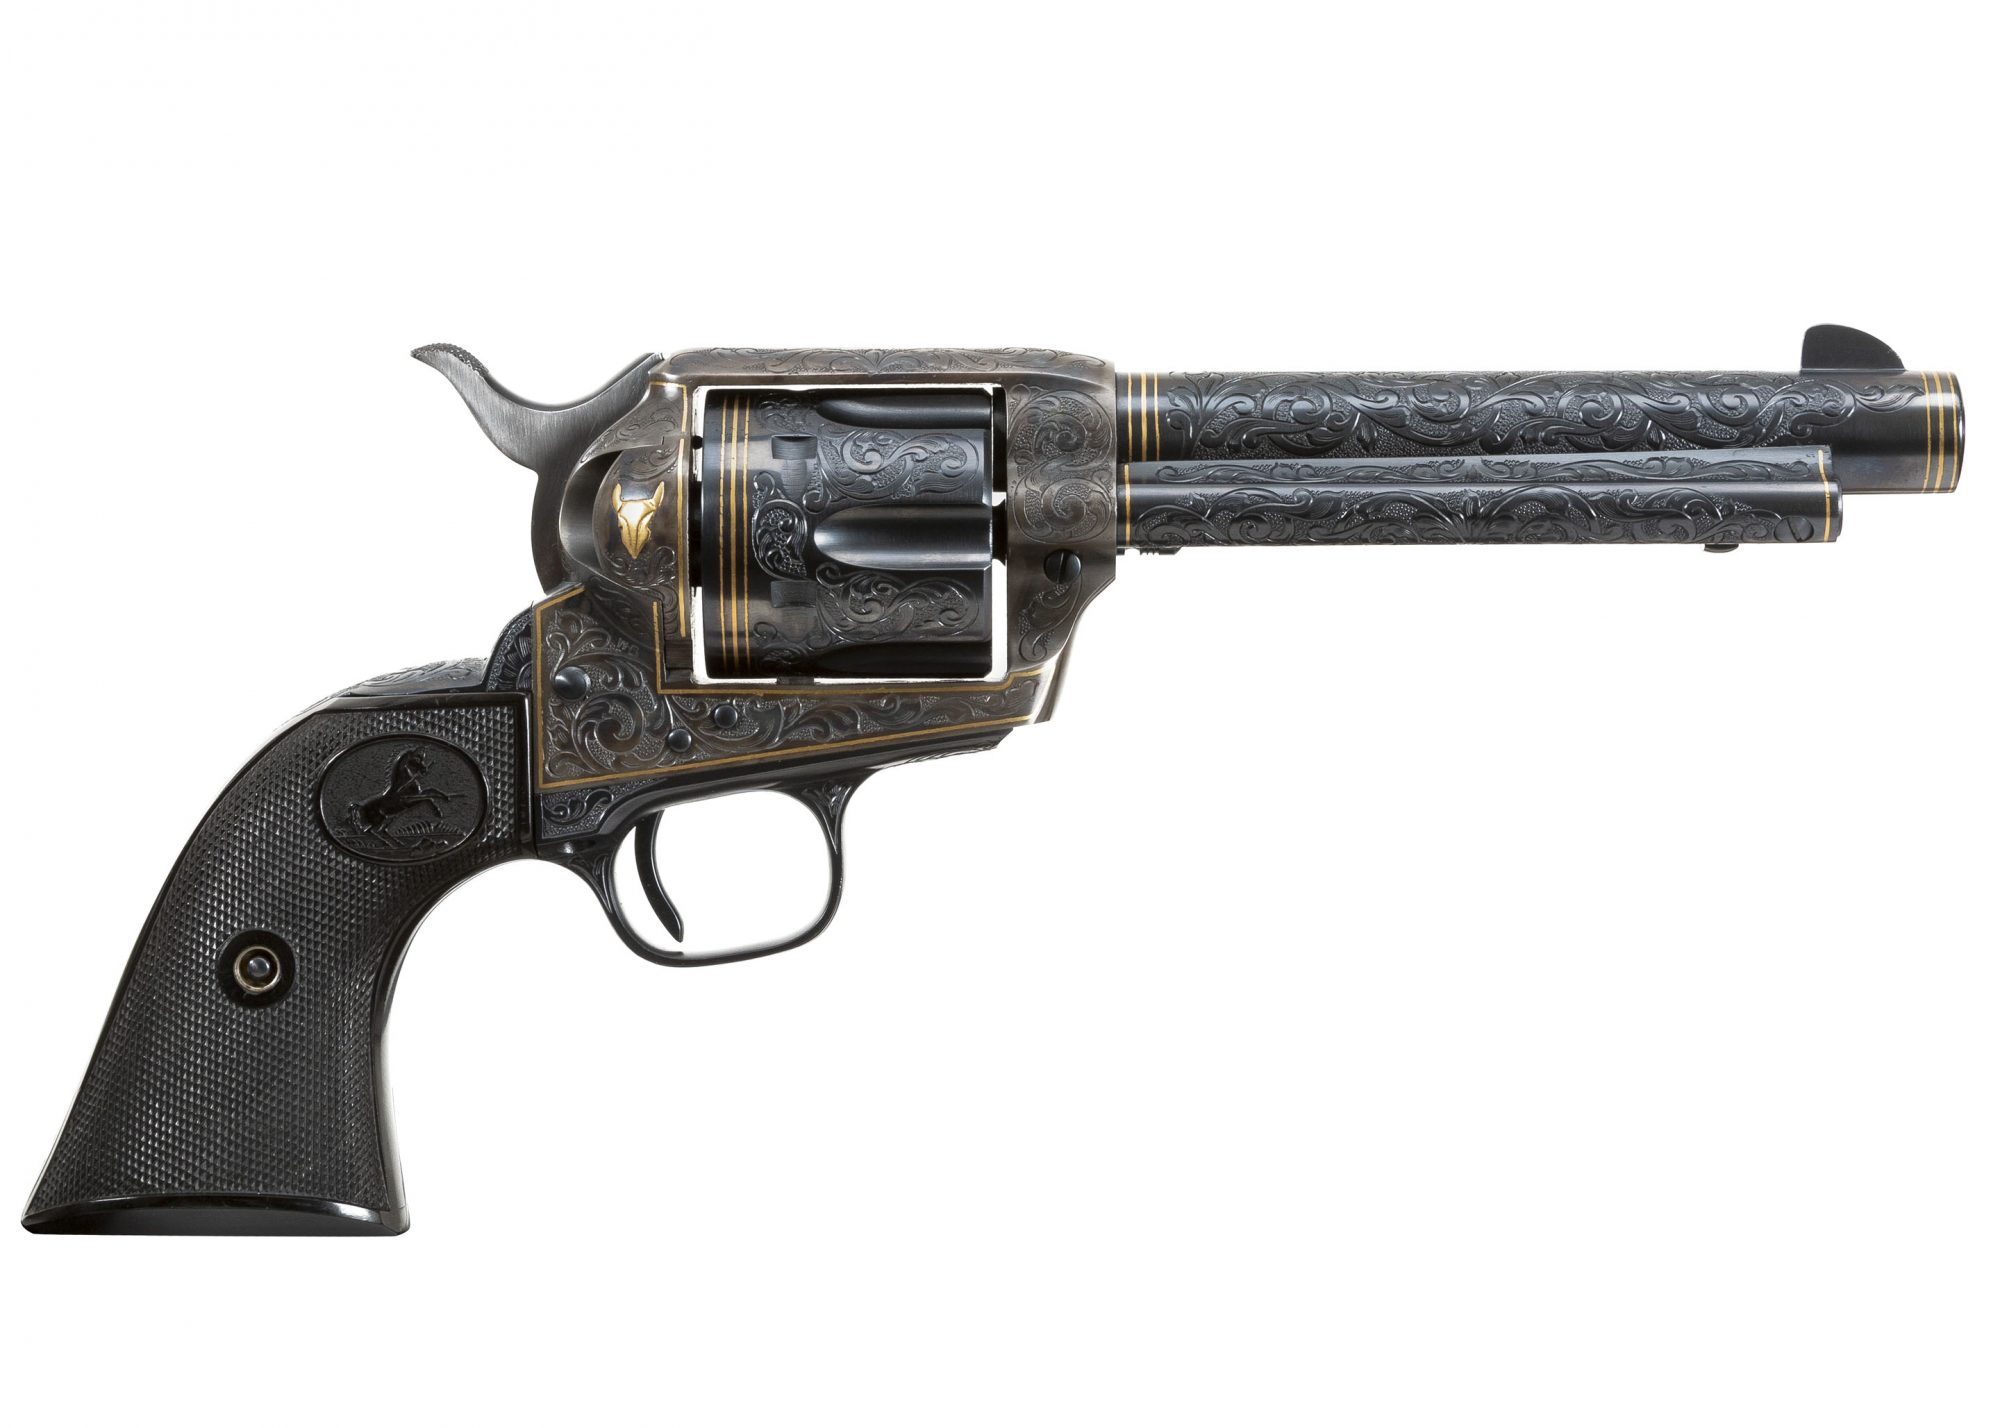 Photo of a 2nd Generation Colt Single Action Army revolver, restored and for sale by Turnbull Restoration of Bloomfield, NY